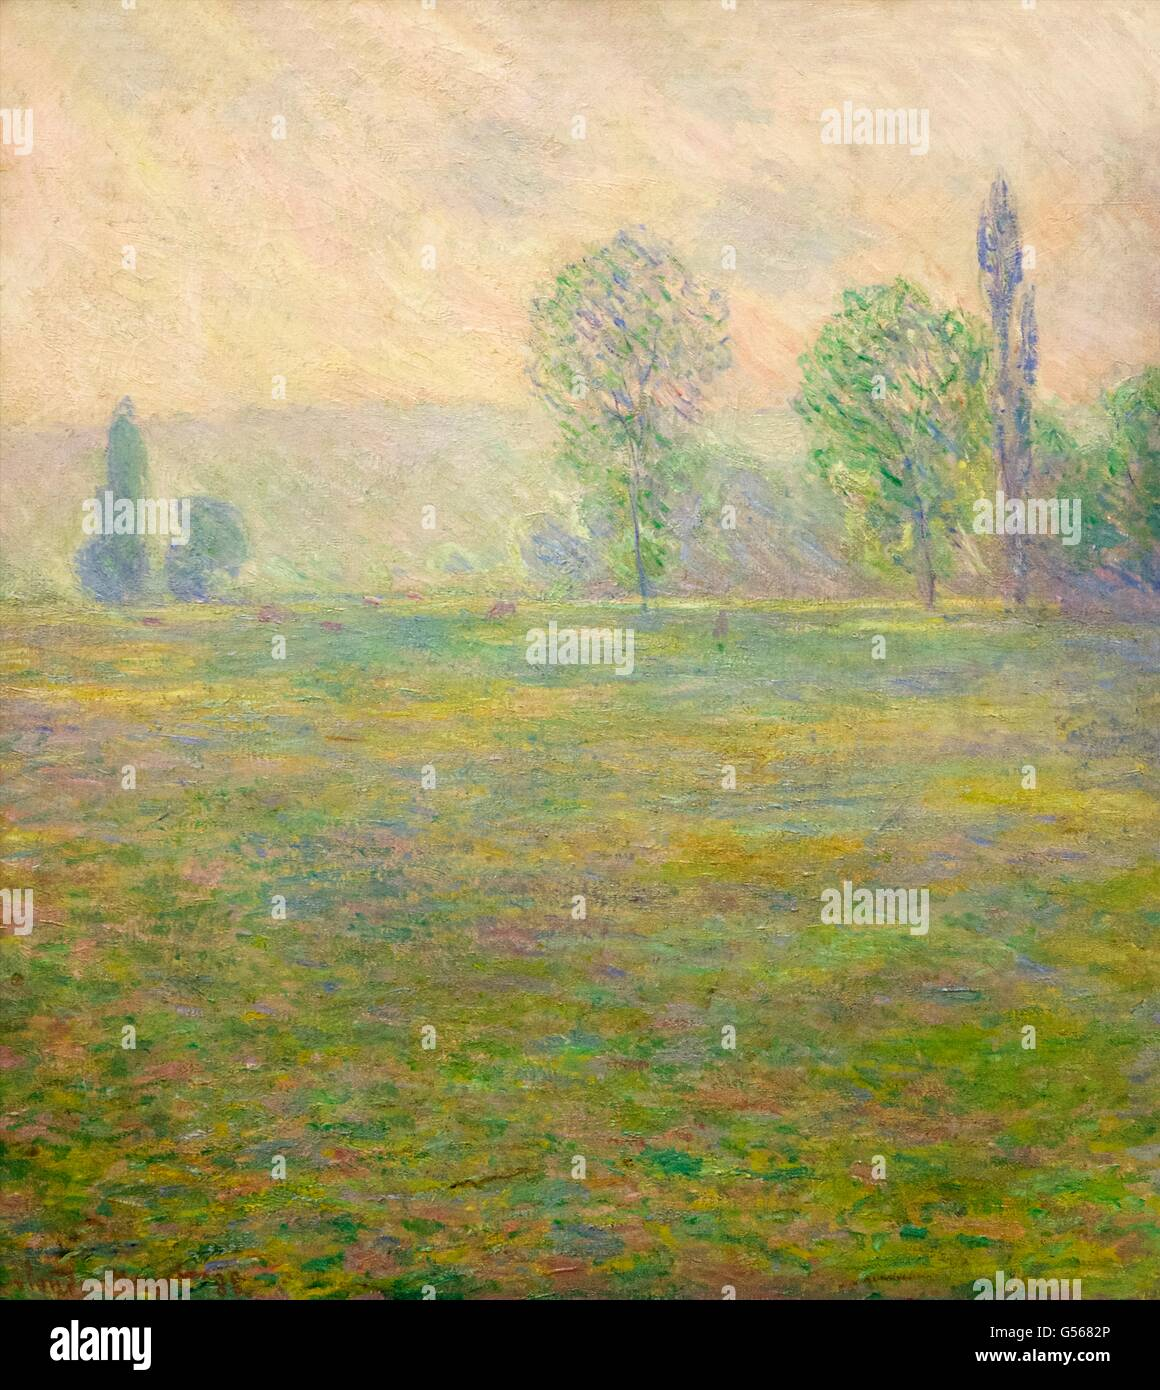 Meadows at Giverny, by Claude Monet, 1888, State Hermitage Museum, Saint Petersburg, Russia - Stock Image